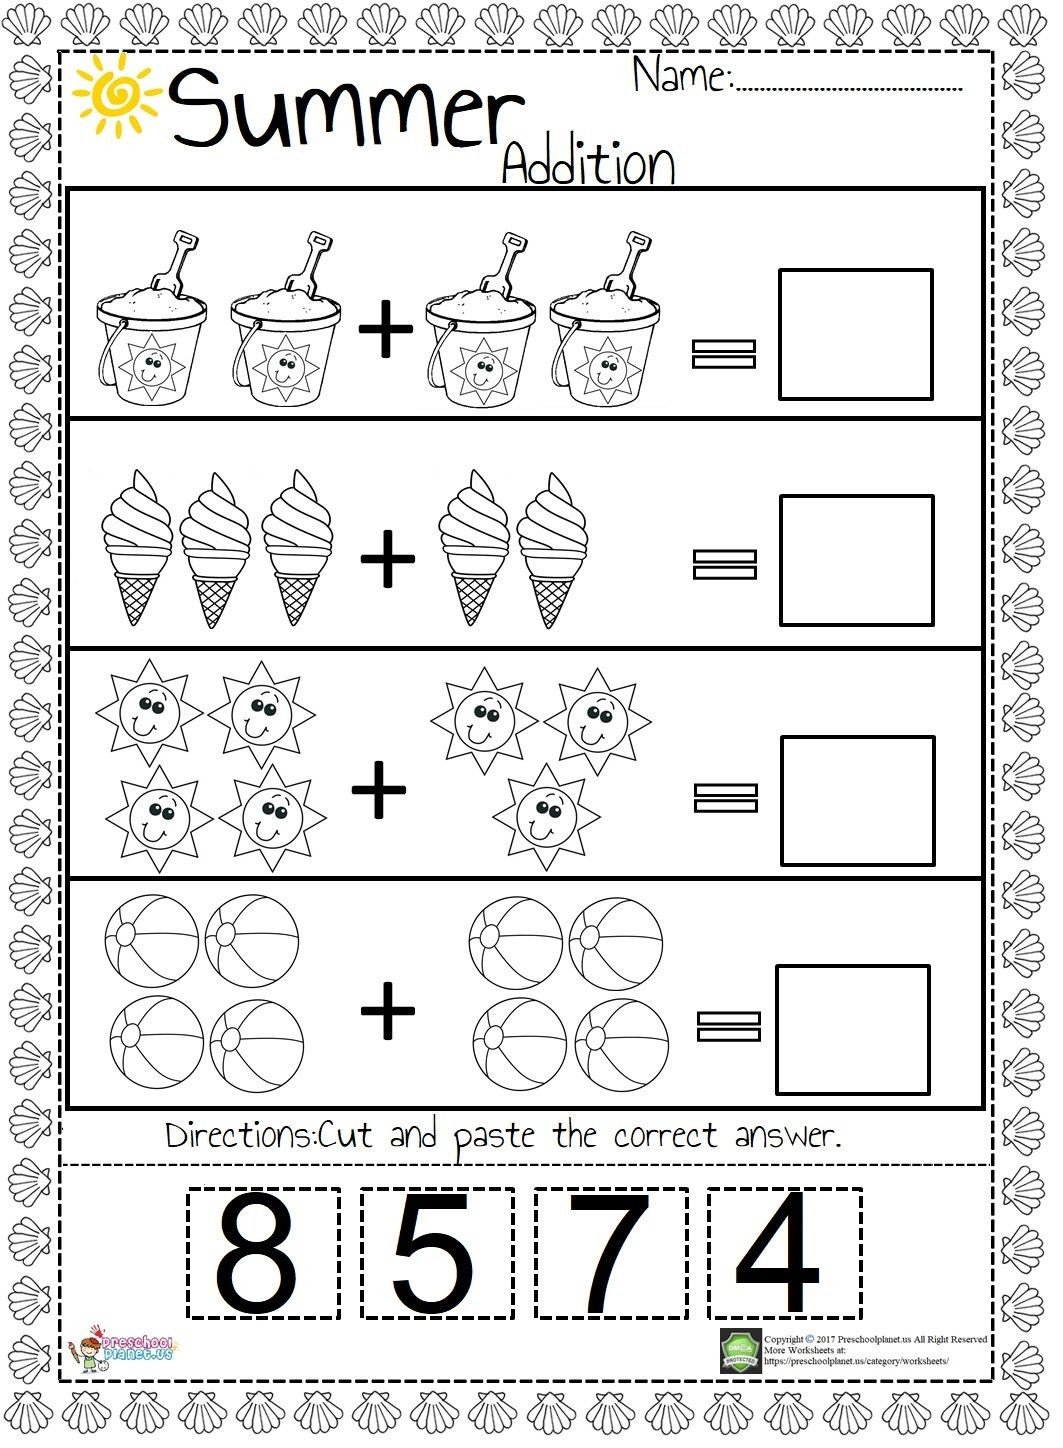 Simple Addition Worksheets Kindergarten We Prepared An Easy and Funny Summer themed Addition